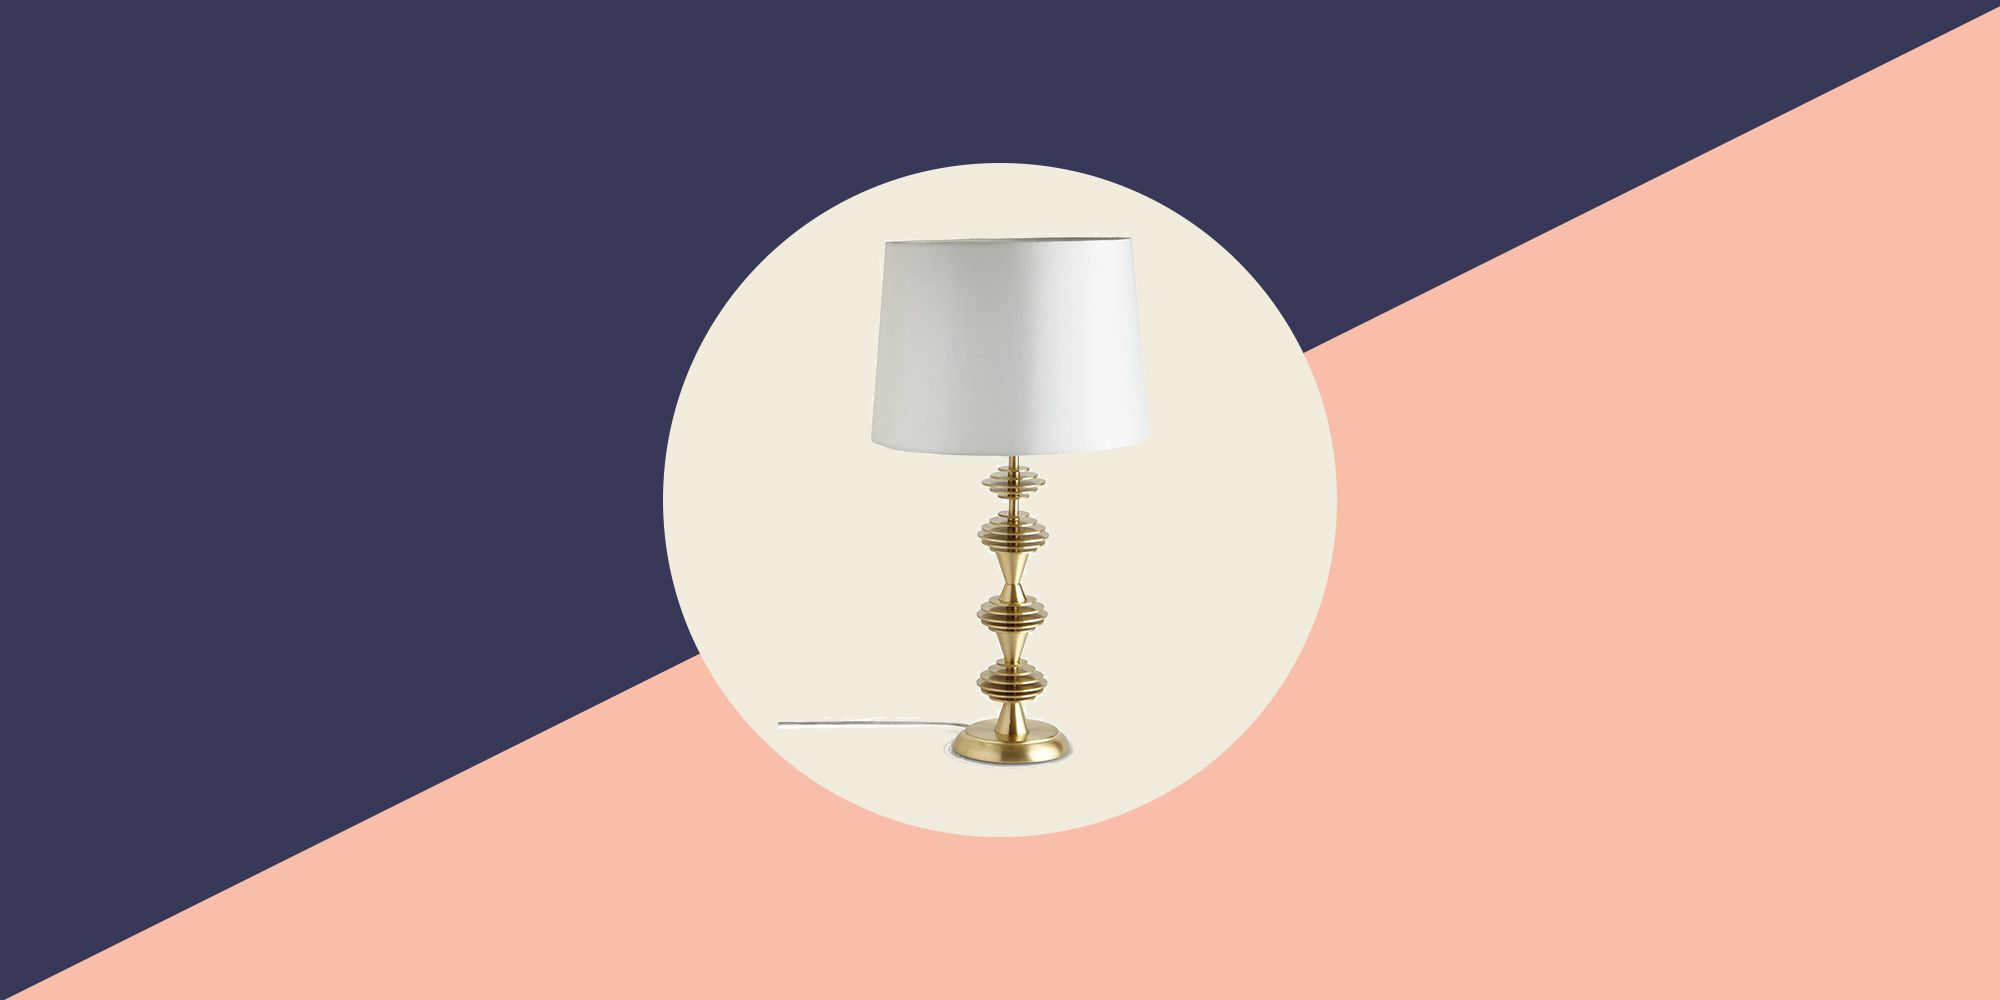 6 stylish hallway lighting buys that will brighten up your space